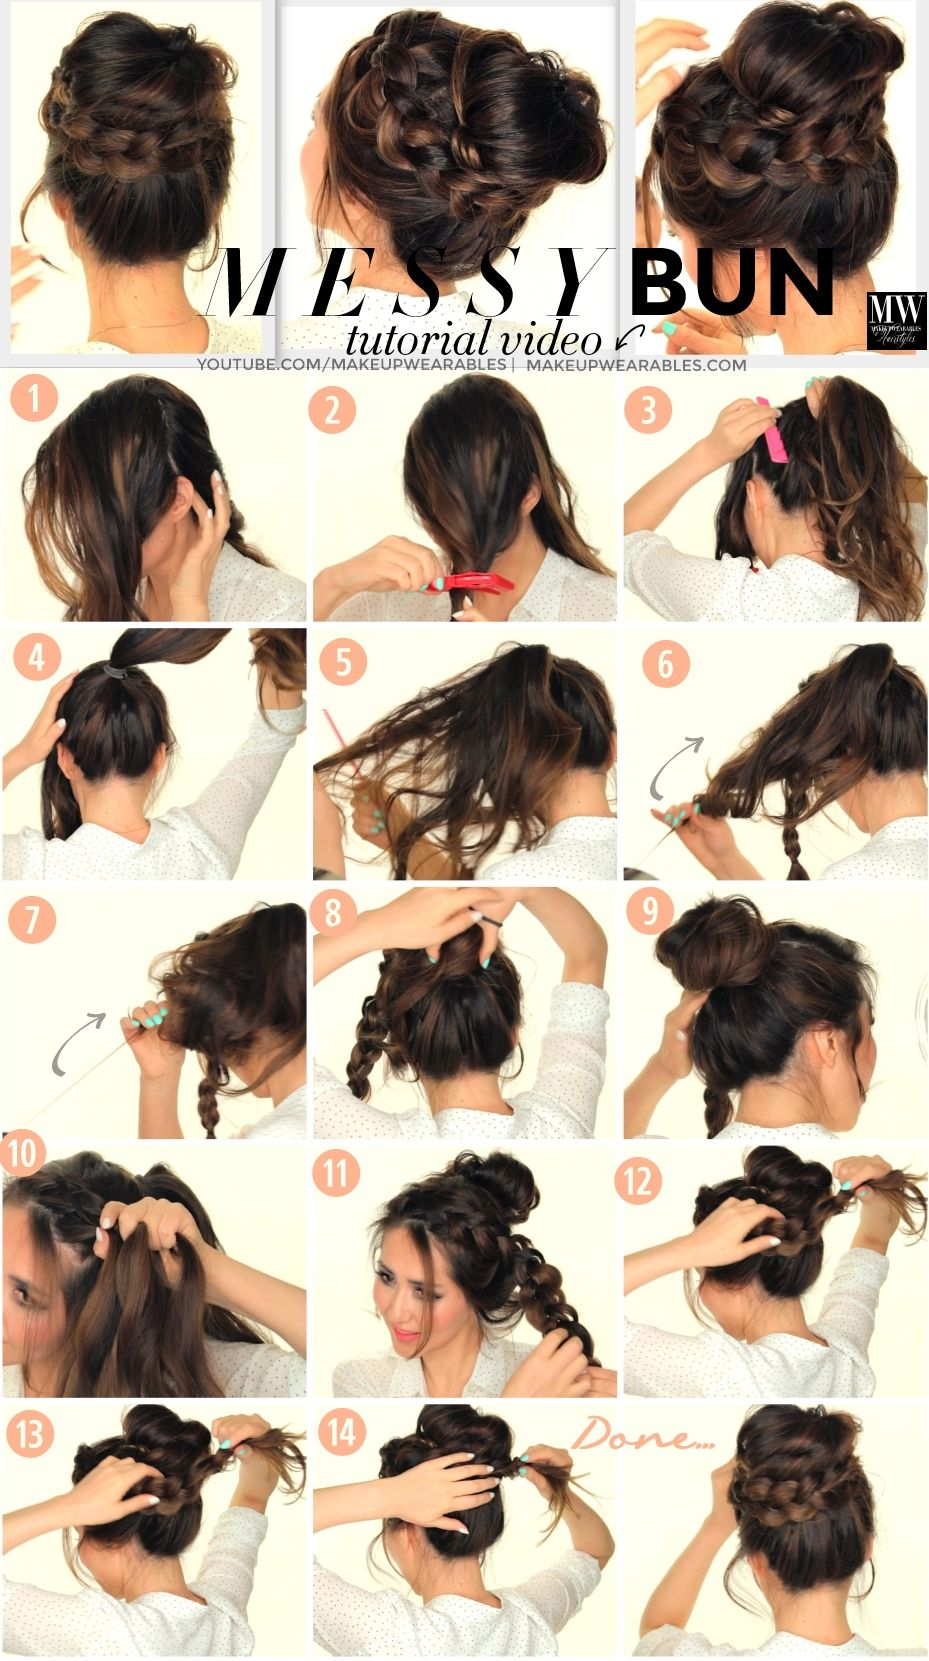 cute 5 minute, second-day hairstyle tutorial. learn how to